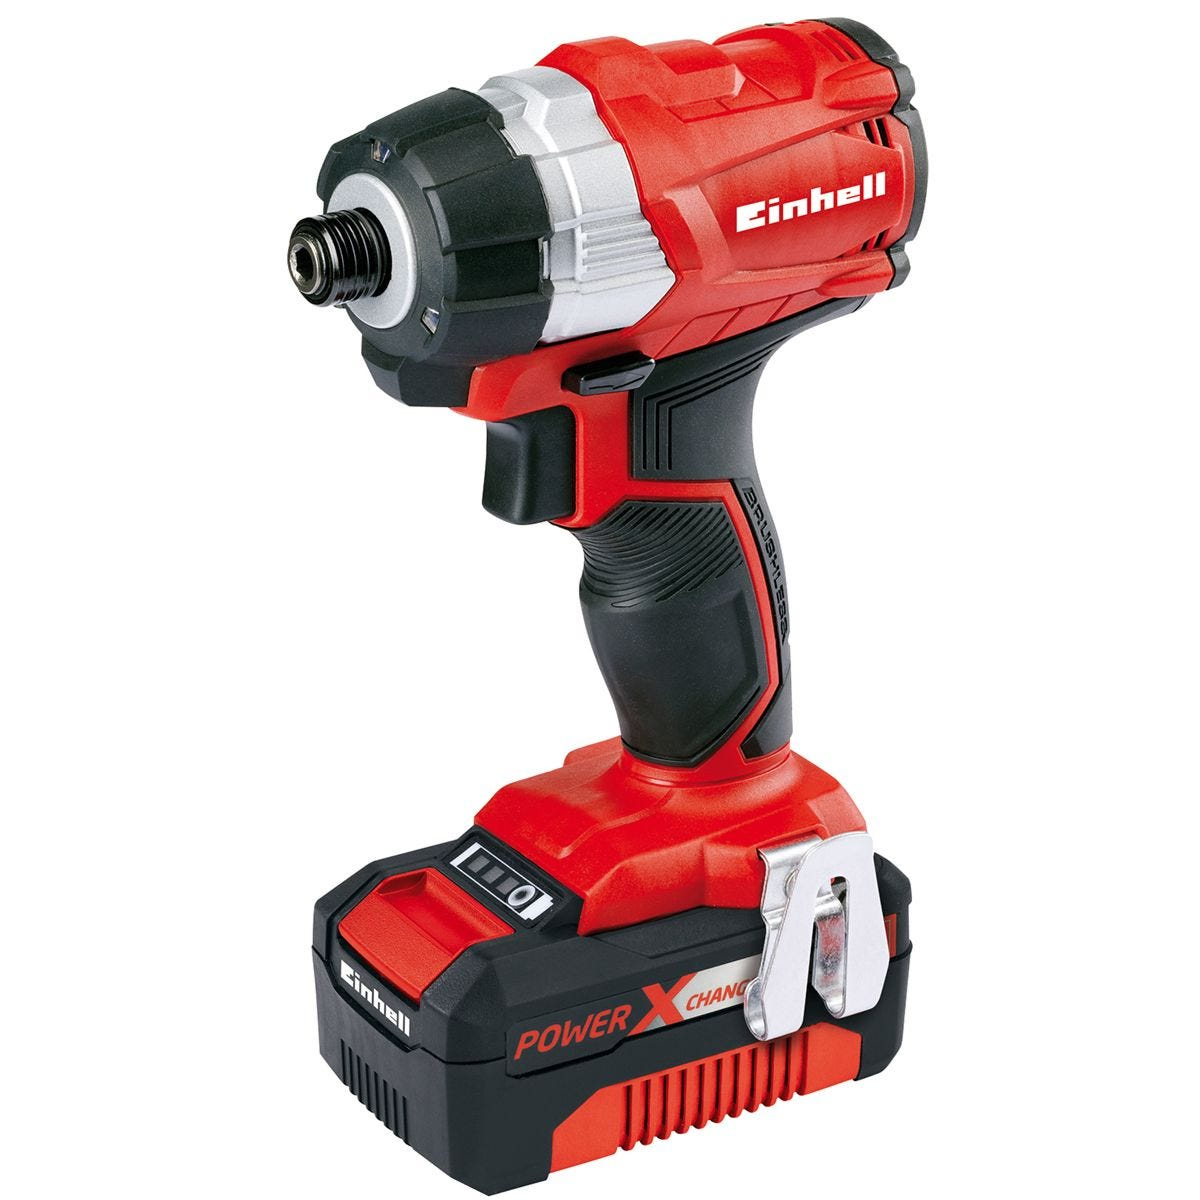 Einhell Power-X-Change 18V Cordless Brushless Impact Driver with 1 x 4.0AH Li-Ion Battery and Tool Bag